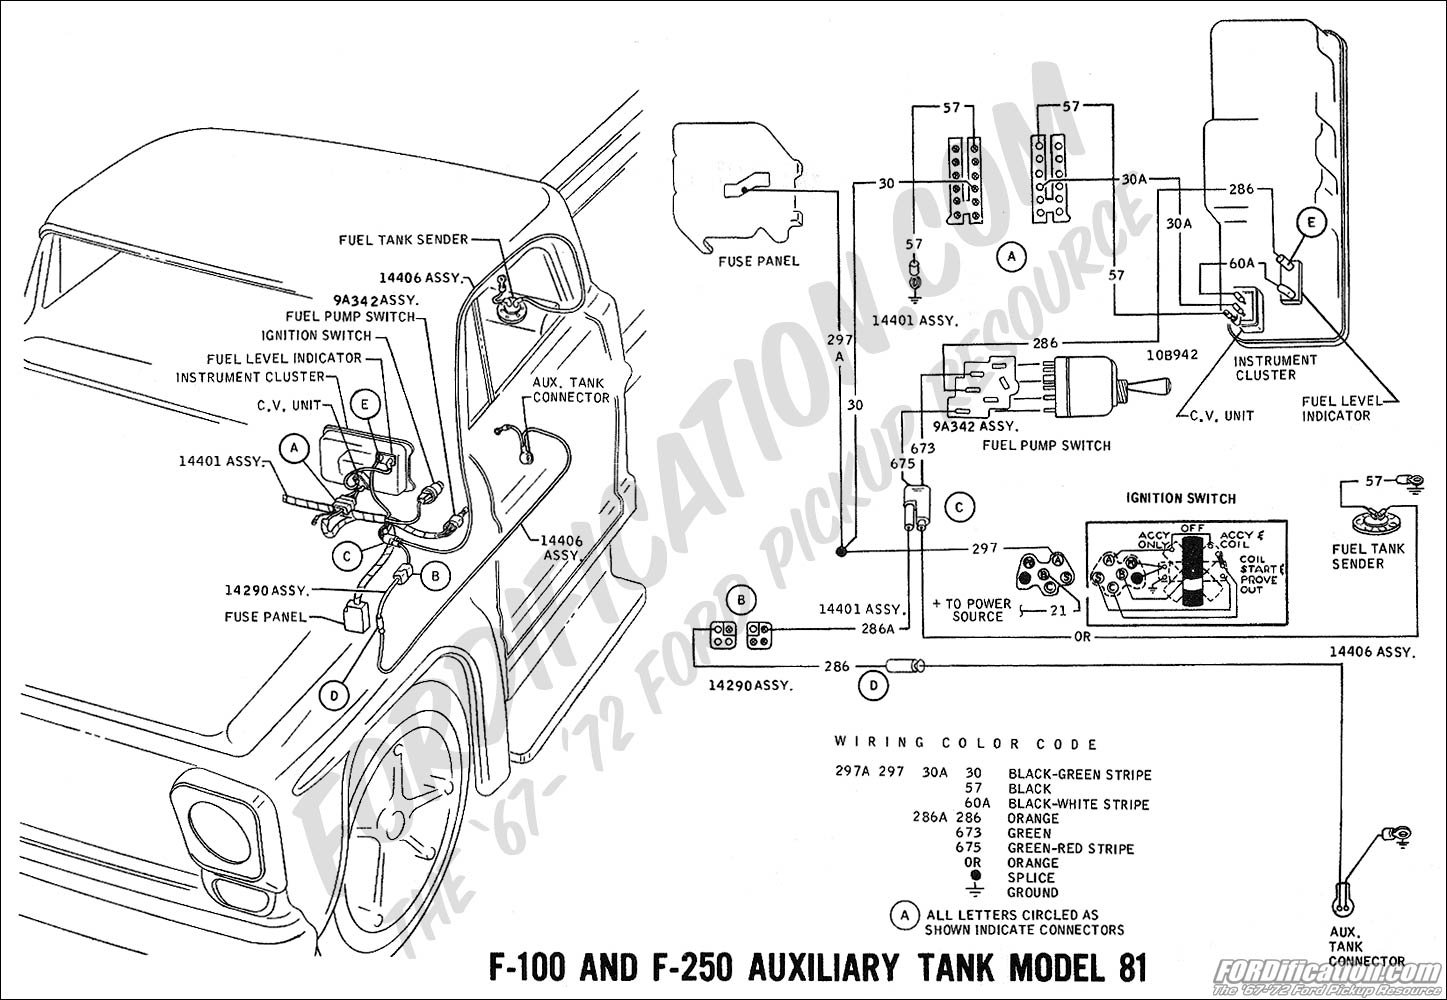 hight resolution of 79 ford truck fuse box wiring schematic1978 ford f150 fuse box diagram wiring schematic 2008 ford